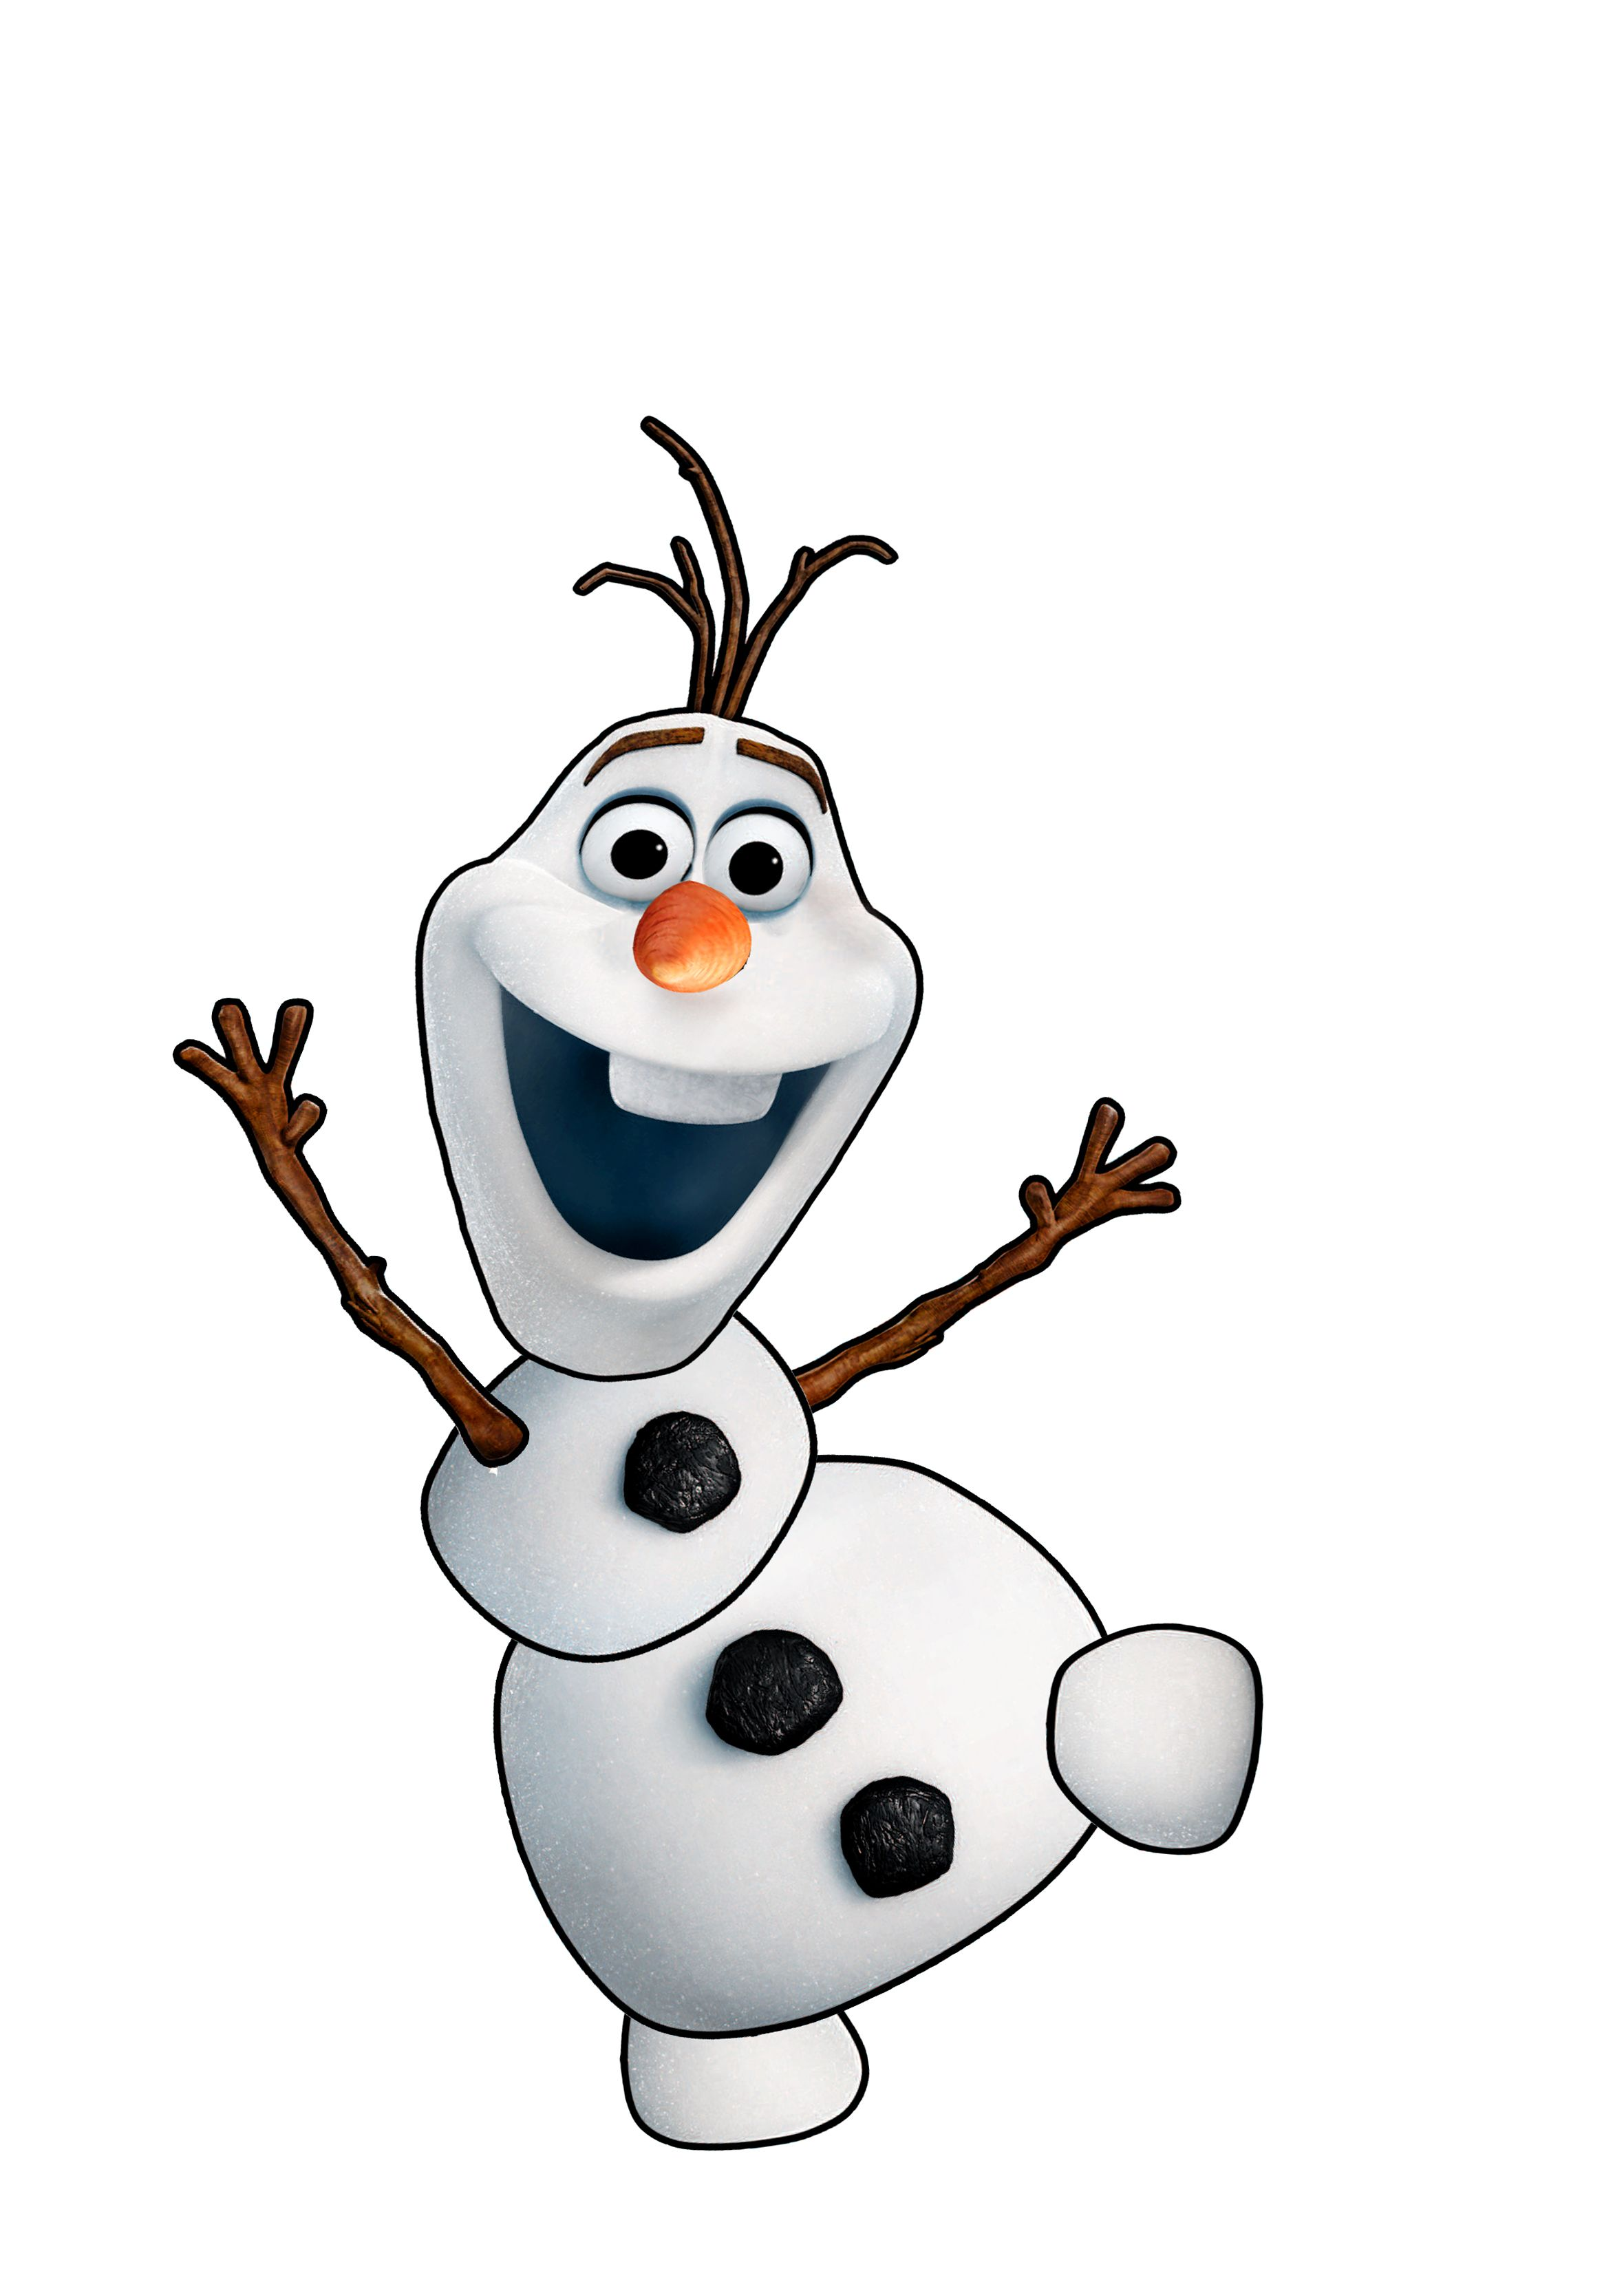 Lively image with regard to olaf printable